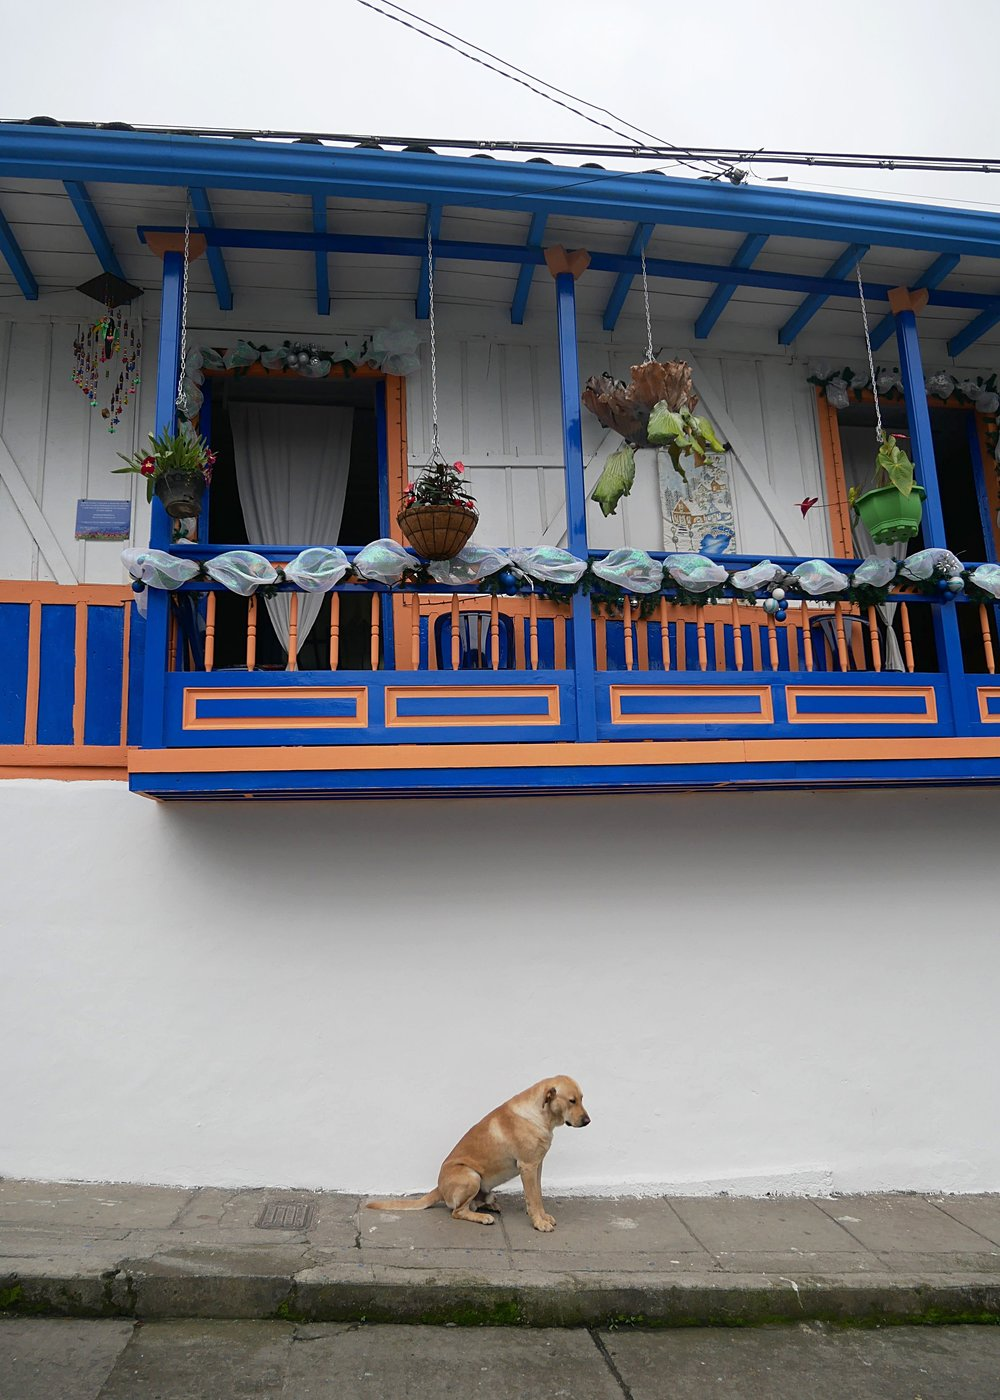 The colourful streets of Salento - adorable dogs included